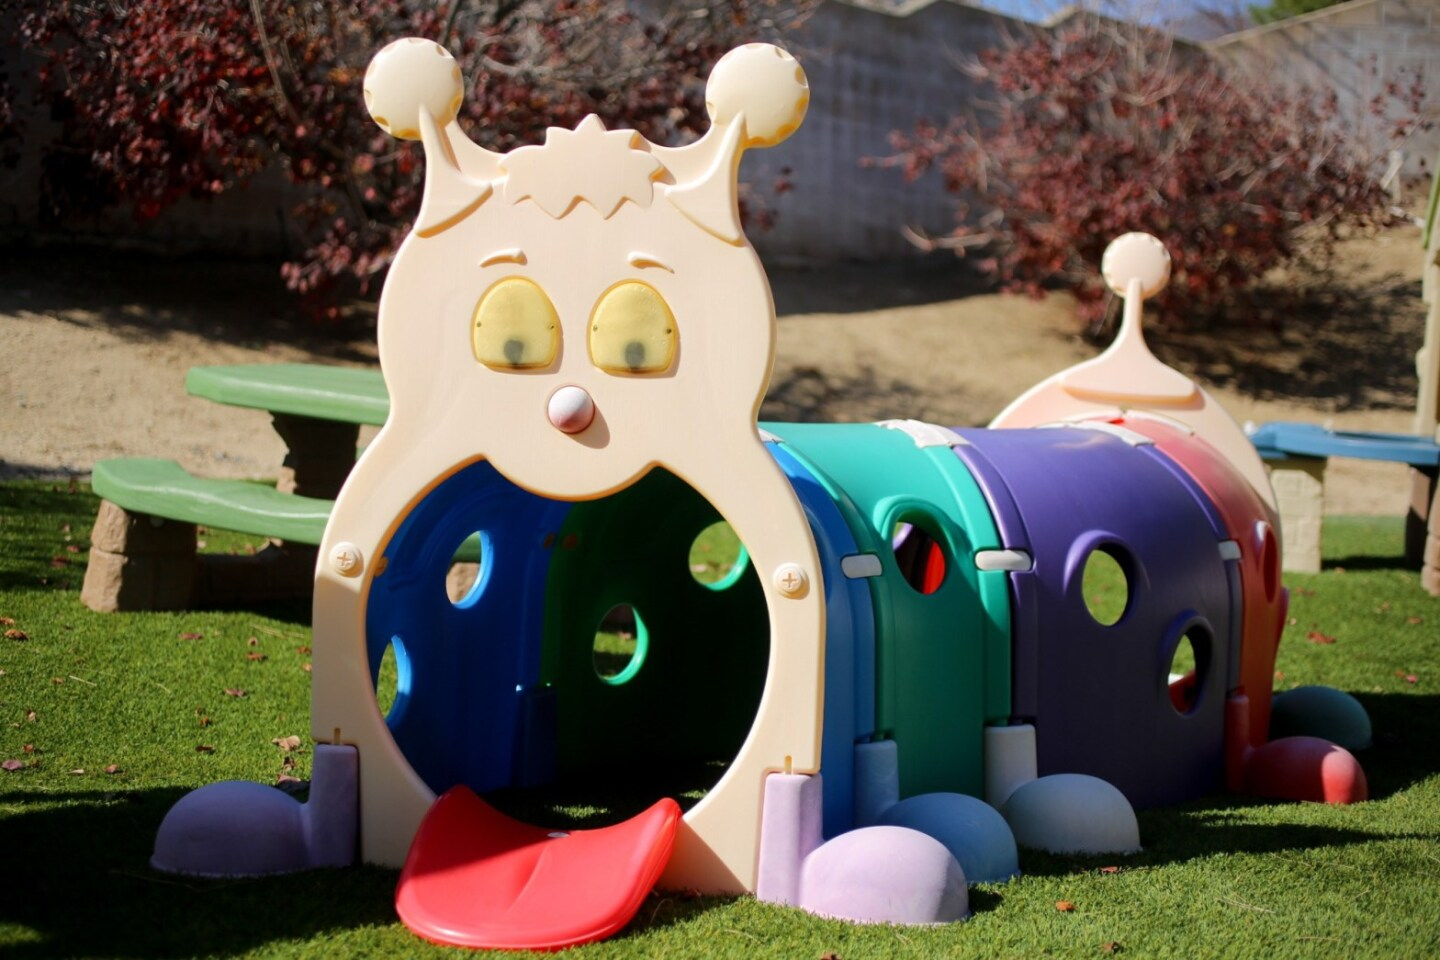 A caterpillar looking play set in Cynthia Bassett's backyard in San Bernardino.